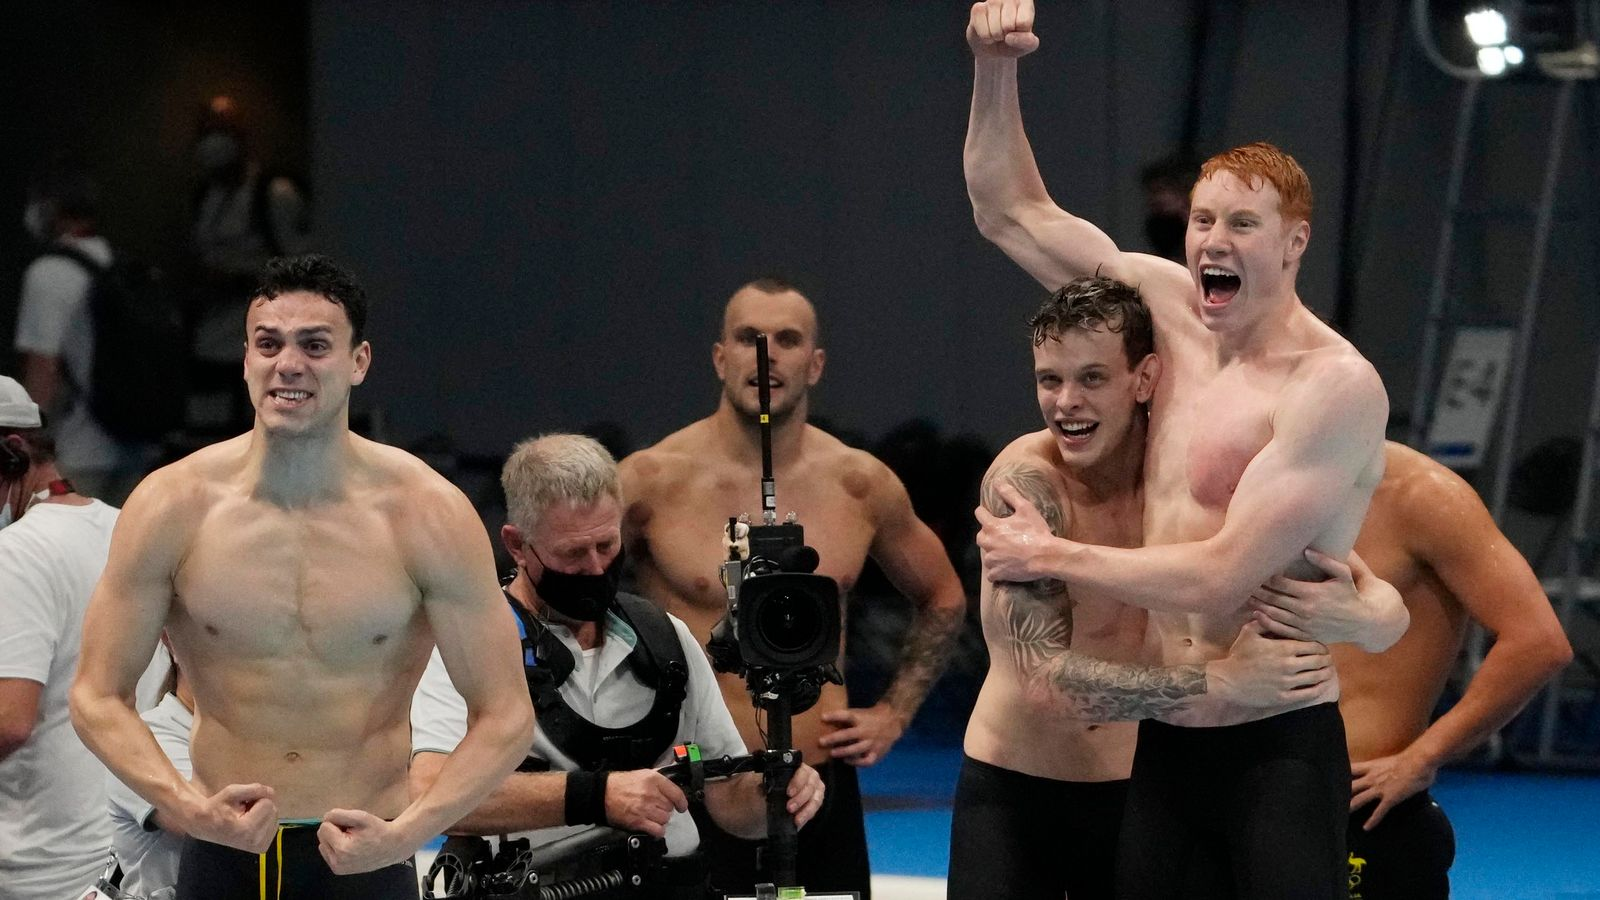 Tokyo Olympics: Further glory in the pool as Team GB win 200m freestyle relay